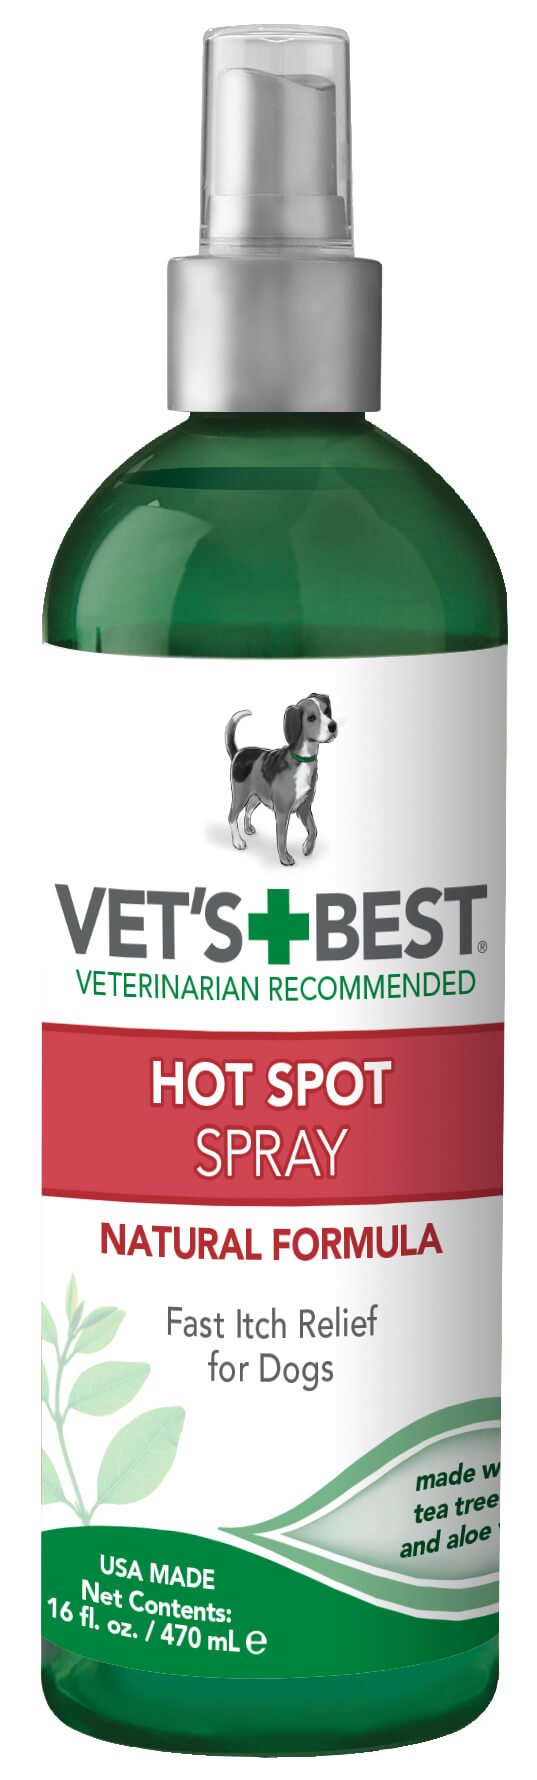 Vet's Best Hot Spot and Itch Relief Spray for Dogs